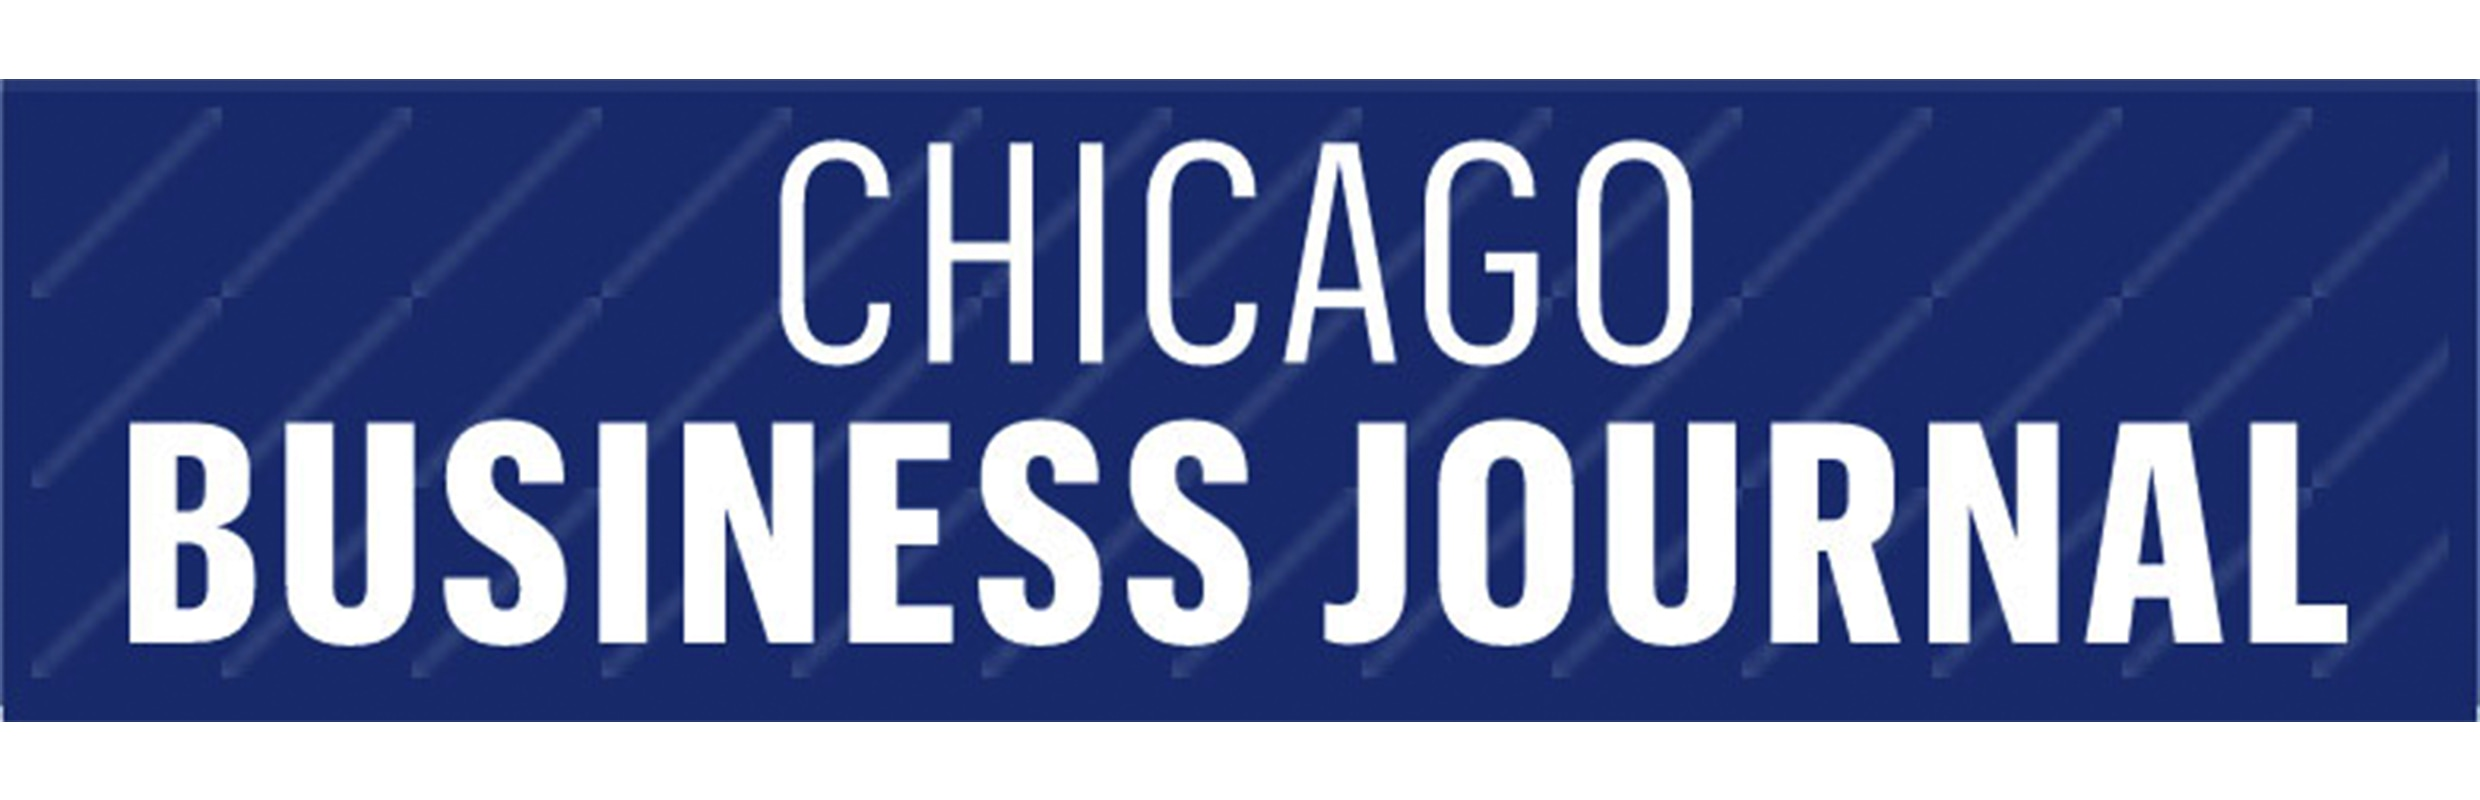 Chicago business journal selected